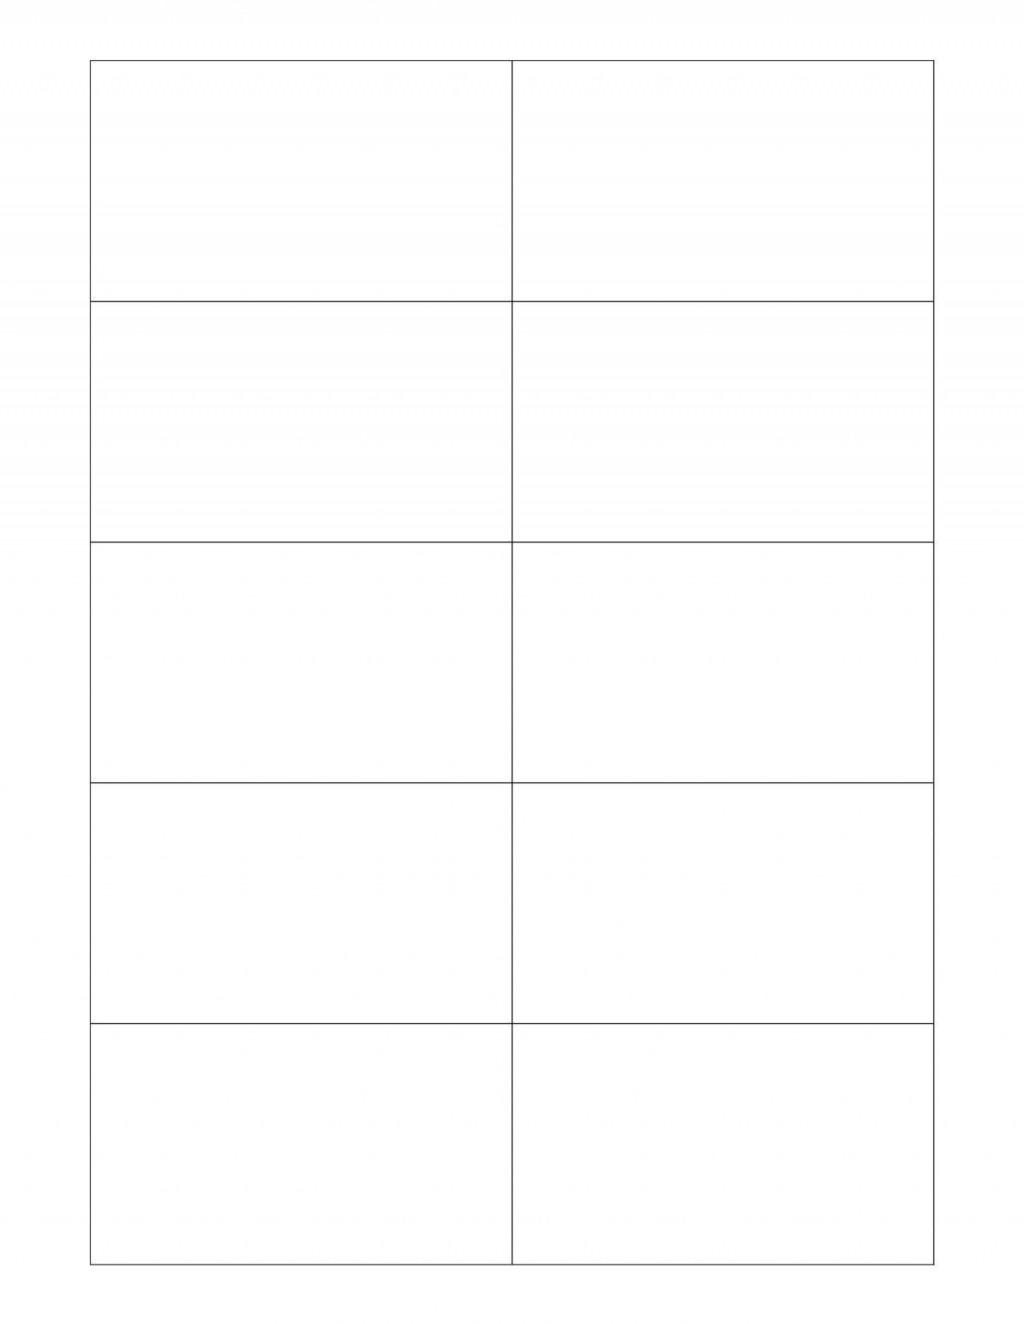 000 Unique Busines Card Template Microsoft Word Highest Clarity  Avery 8 Per Page How To Make A Layout OnLarge